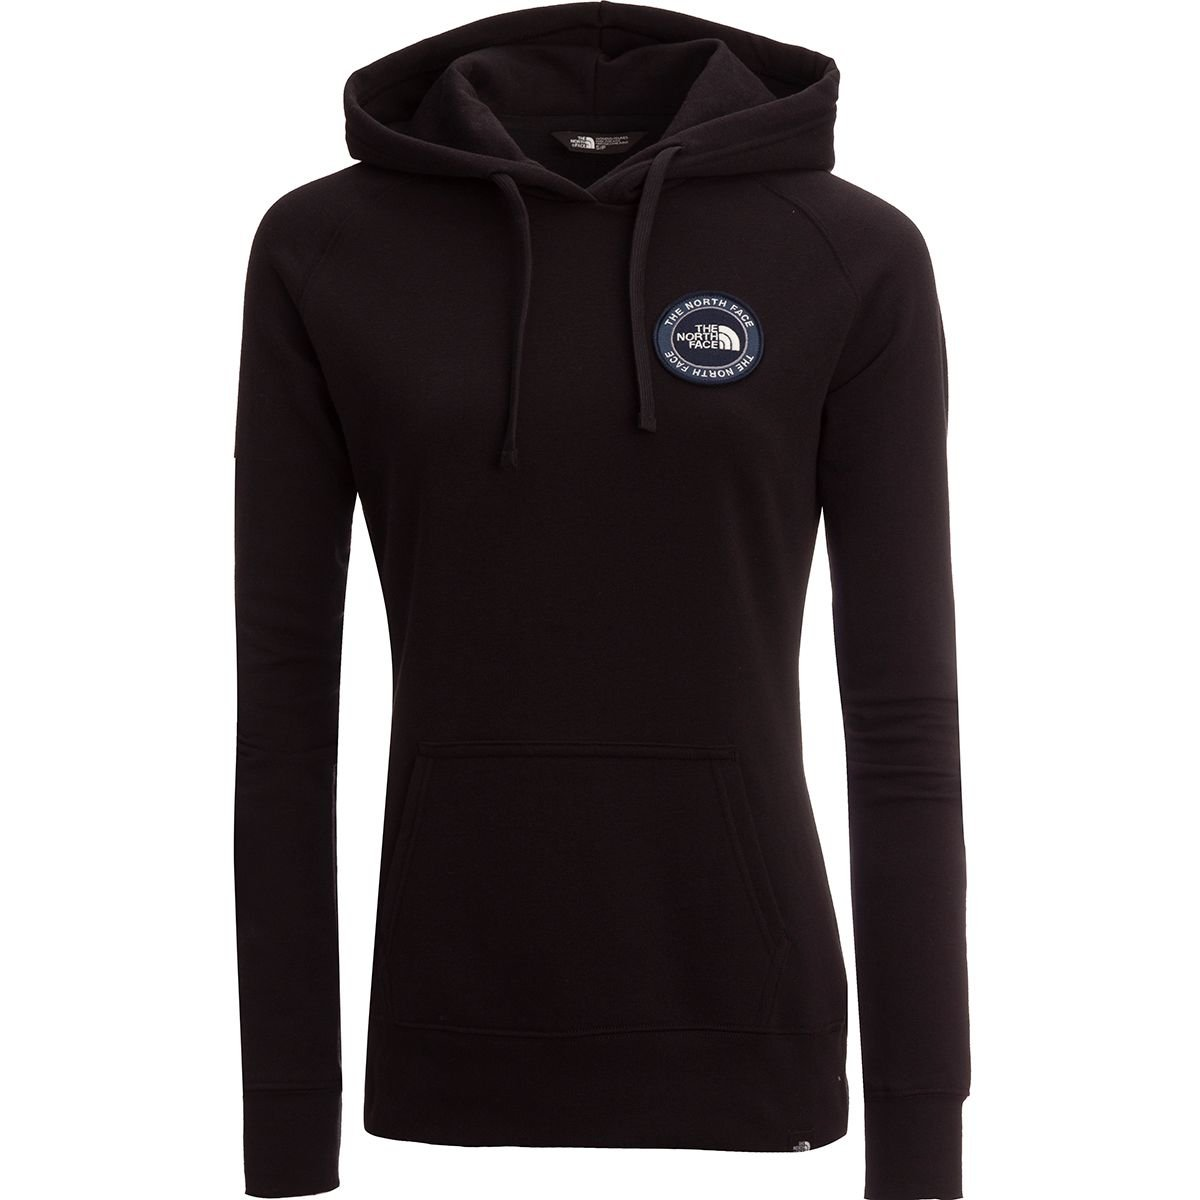 dd38340e1 The North Face Women's Patches Pullover Hoodie